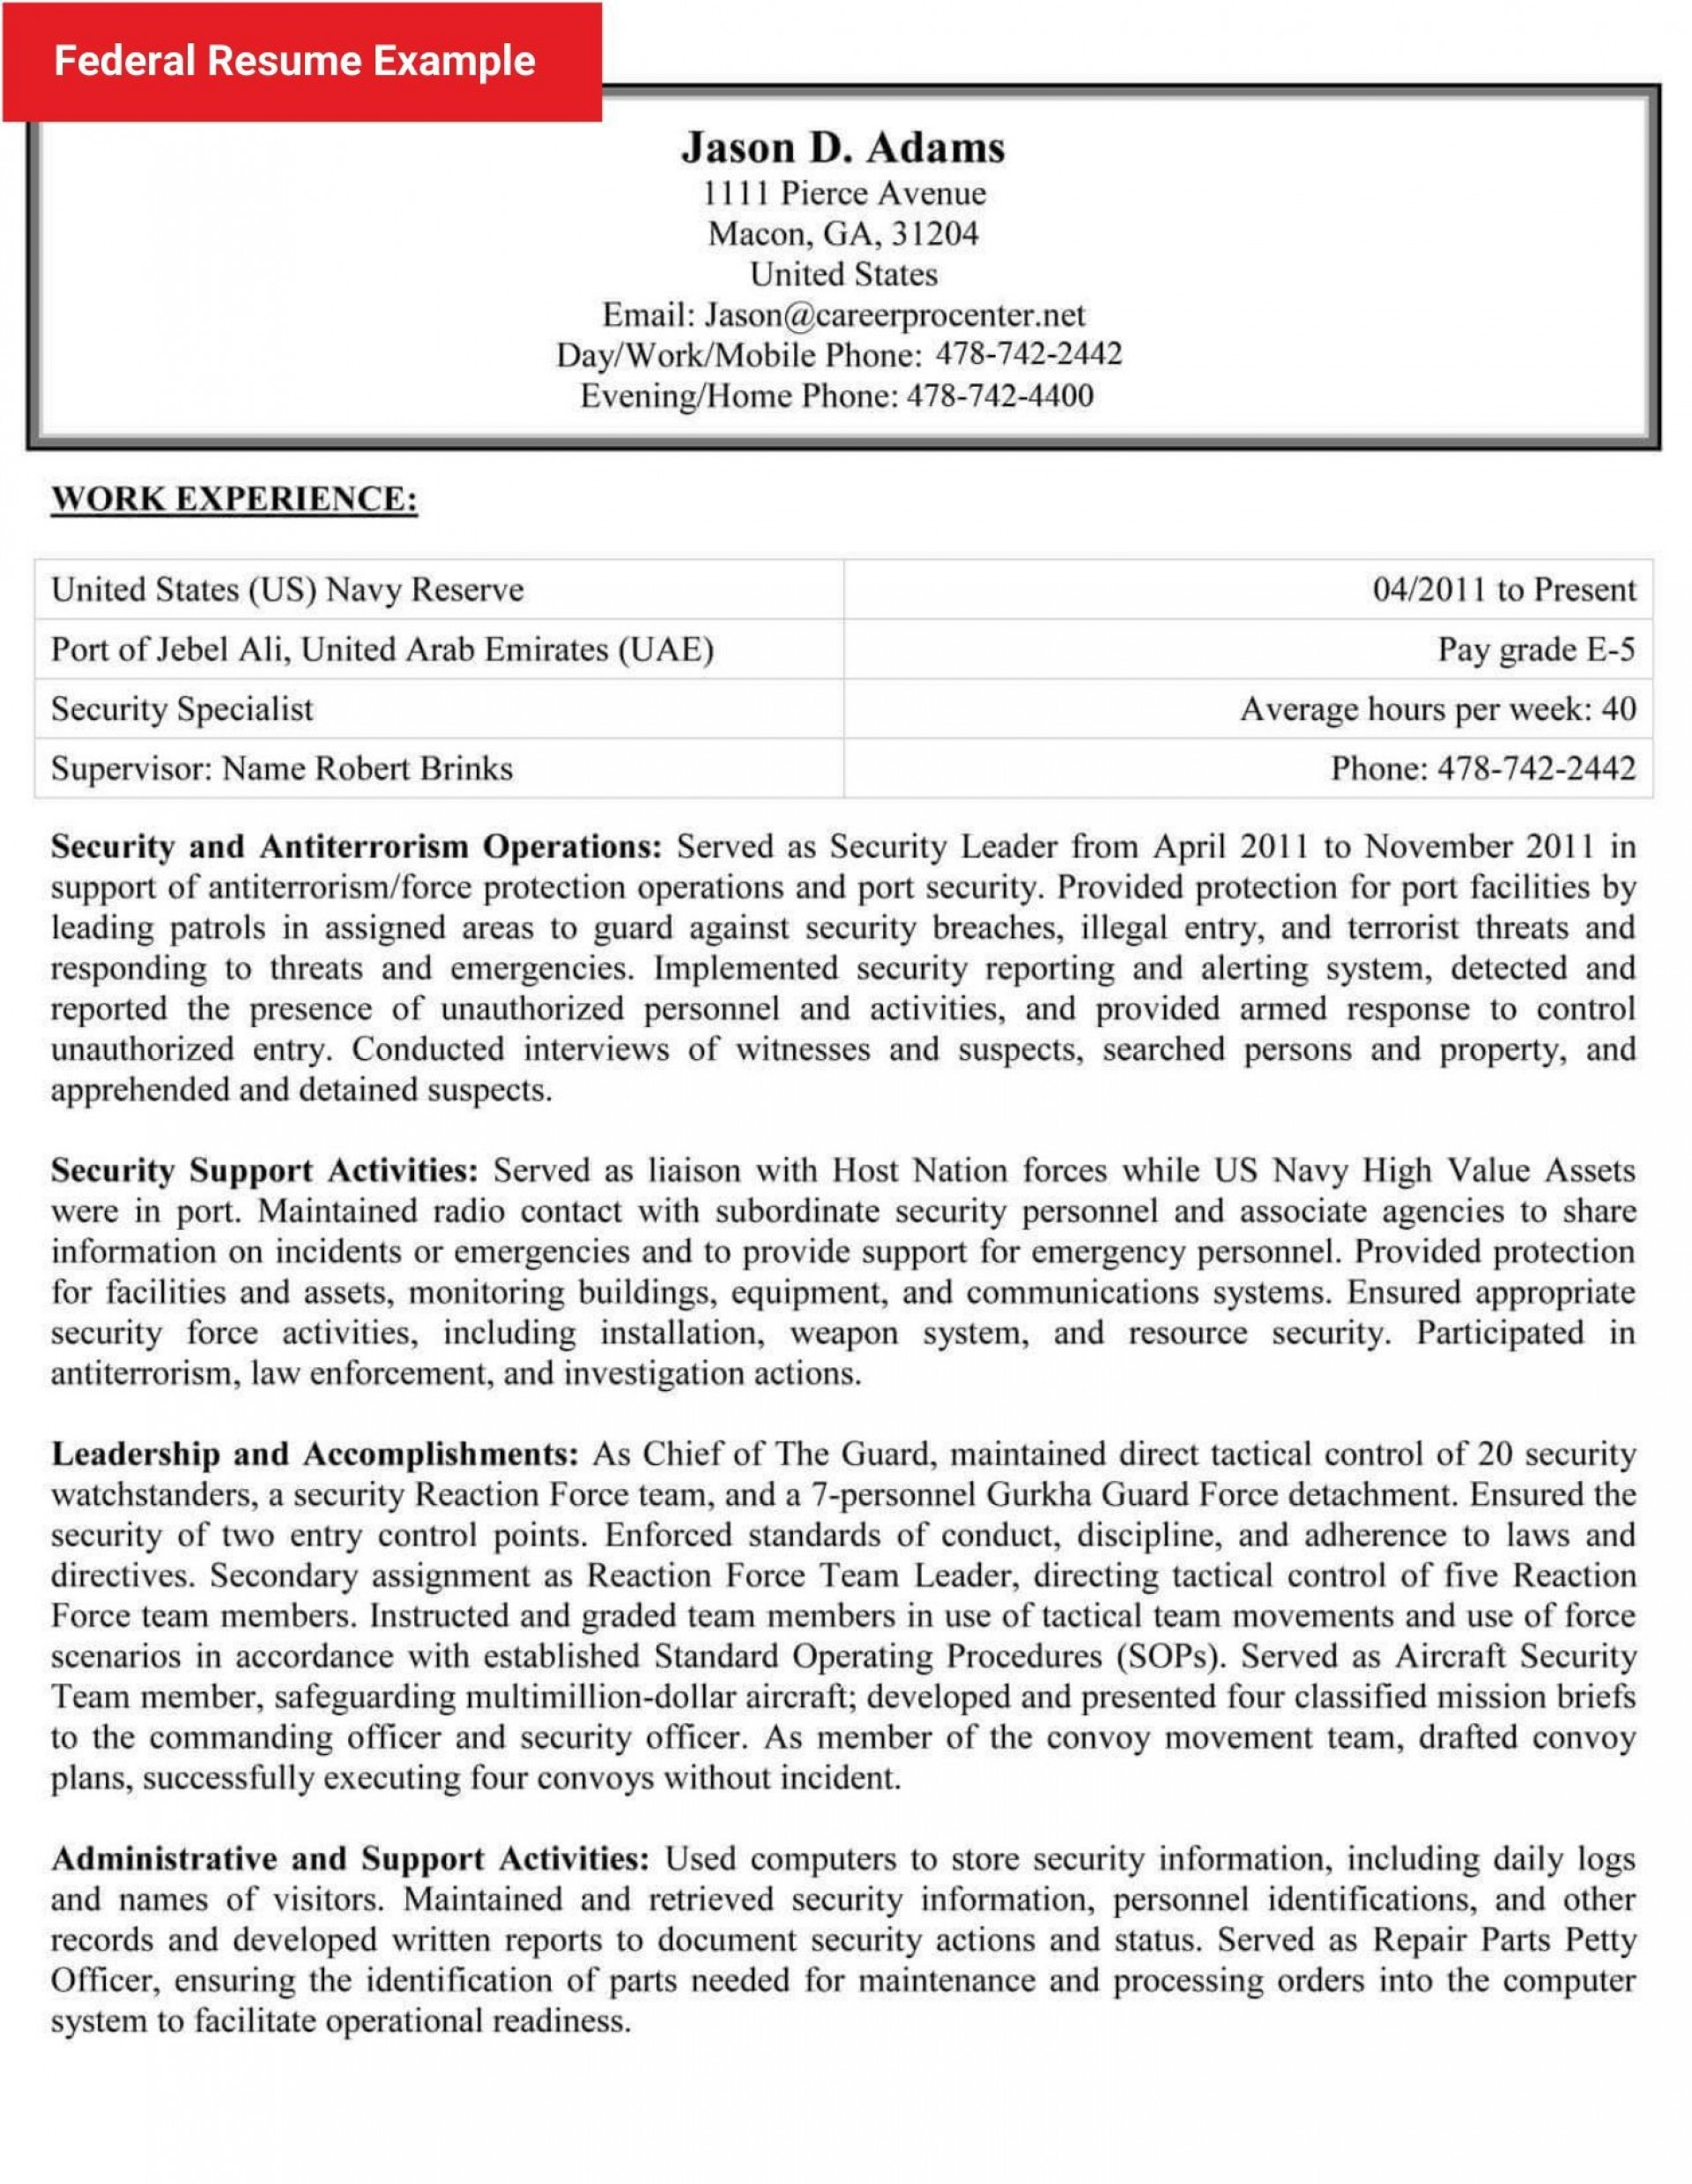 federal resume template addictionary example exceptional highest clarity biden nurse aide Resume Federal Resume Example 2020